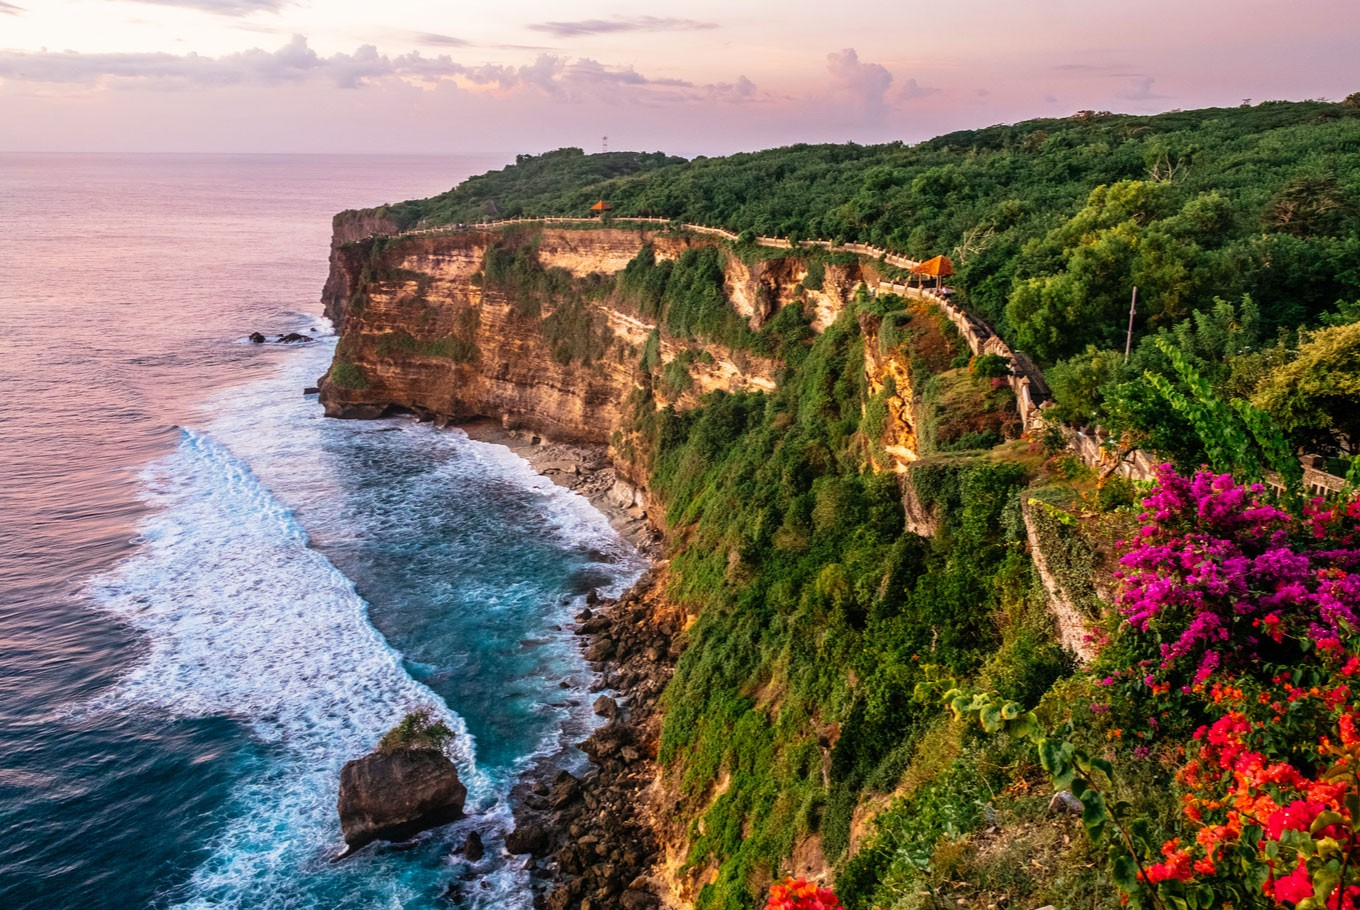 Nine places to visit in Indonesia according to Jakpost ...